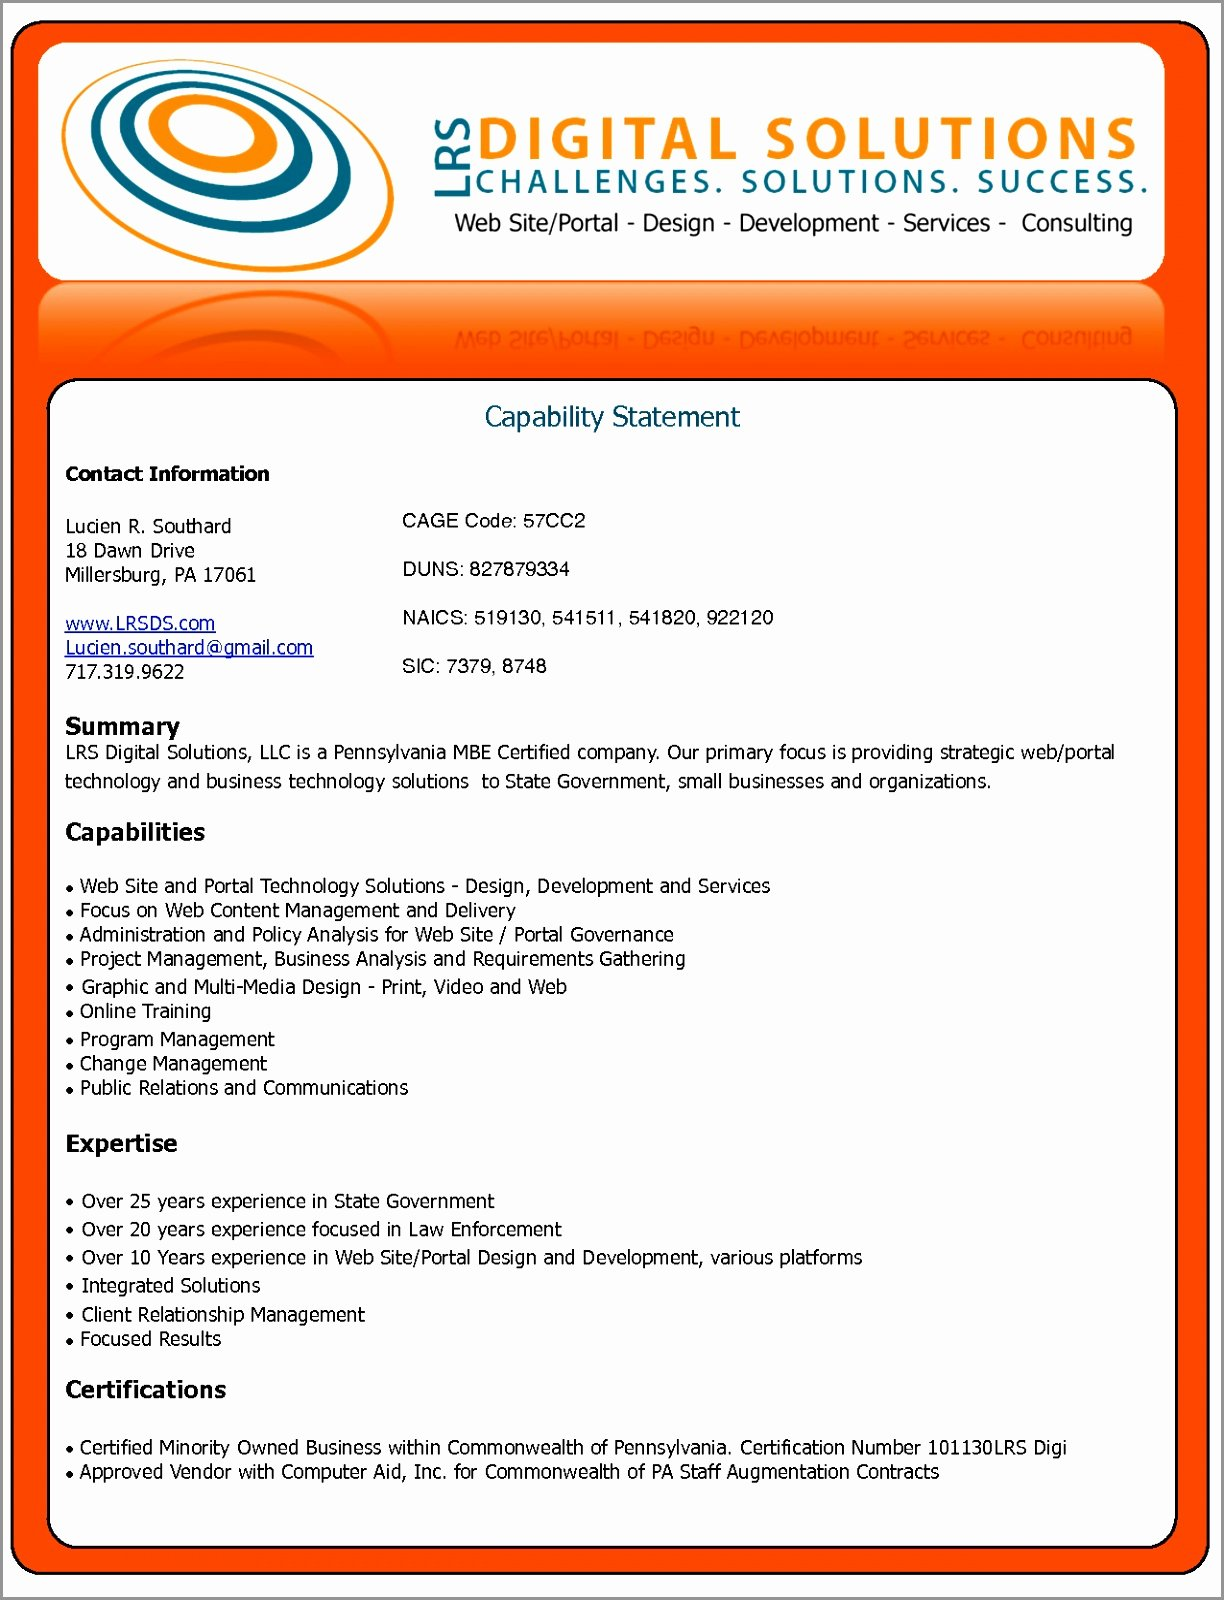 Capability Statement Template Word Awesome Sample Capability Statement Templates – 15 Free Documents